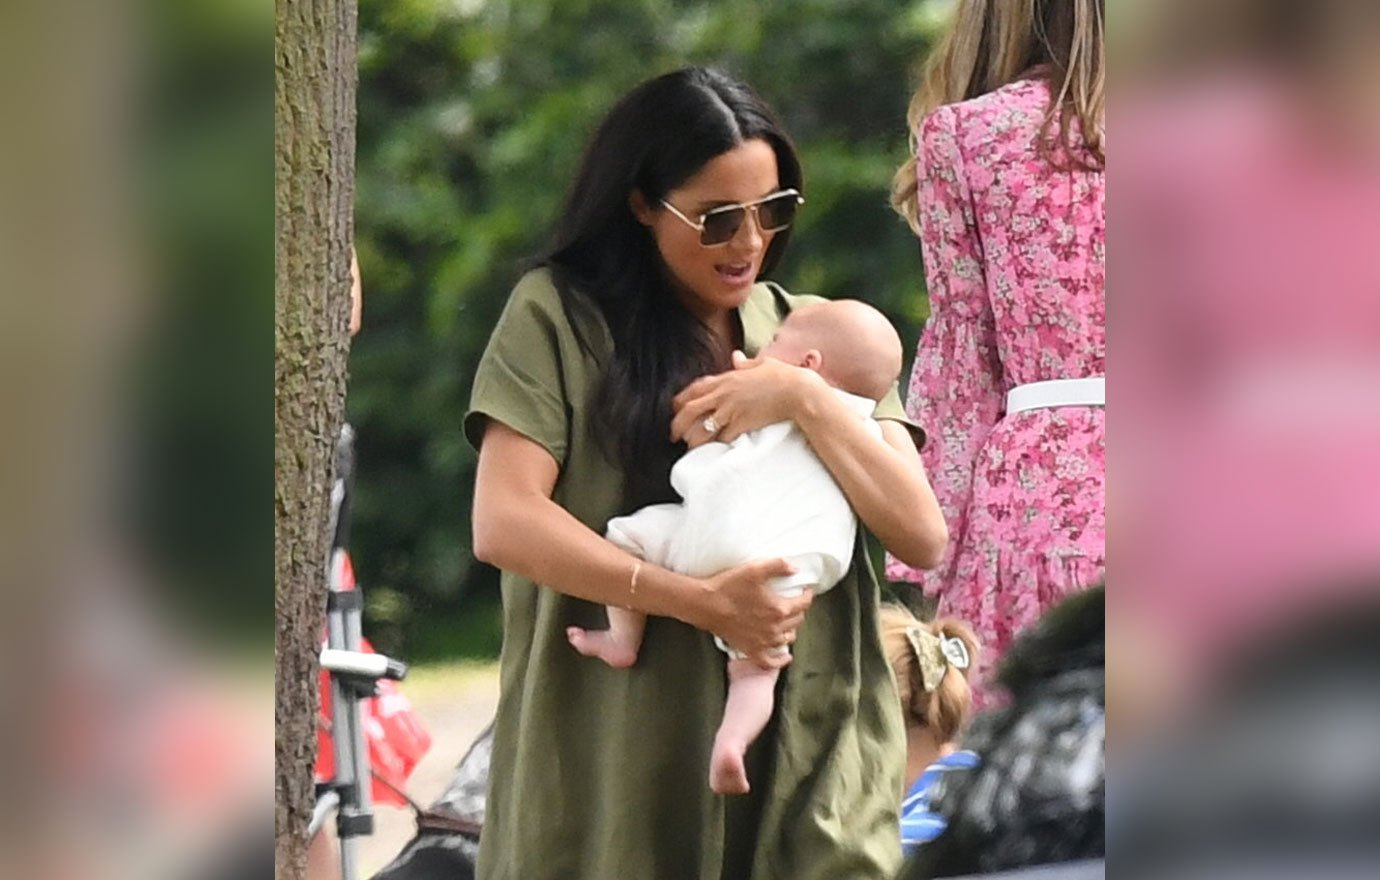 Meghan Markle The Duchess of Sussex with her newborn son Archie and Kate Middleton the Duchess of Cambridge seen watching Prince William and husband Prince Harry play in the King Power Royal Charity Polo Day